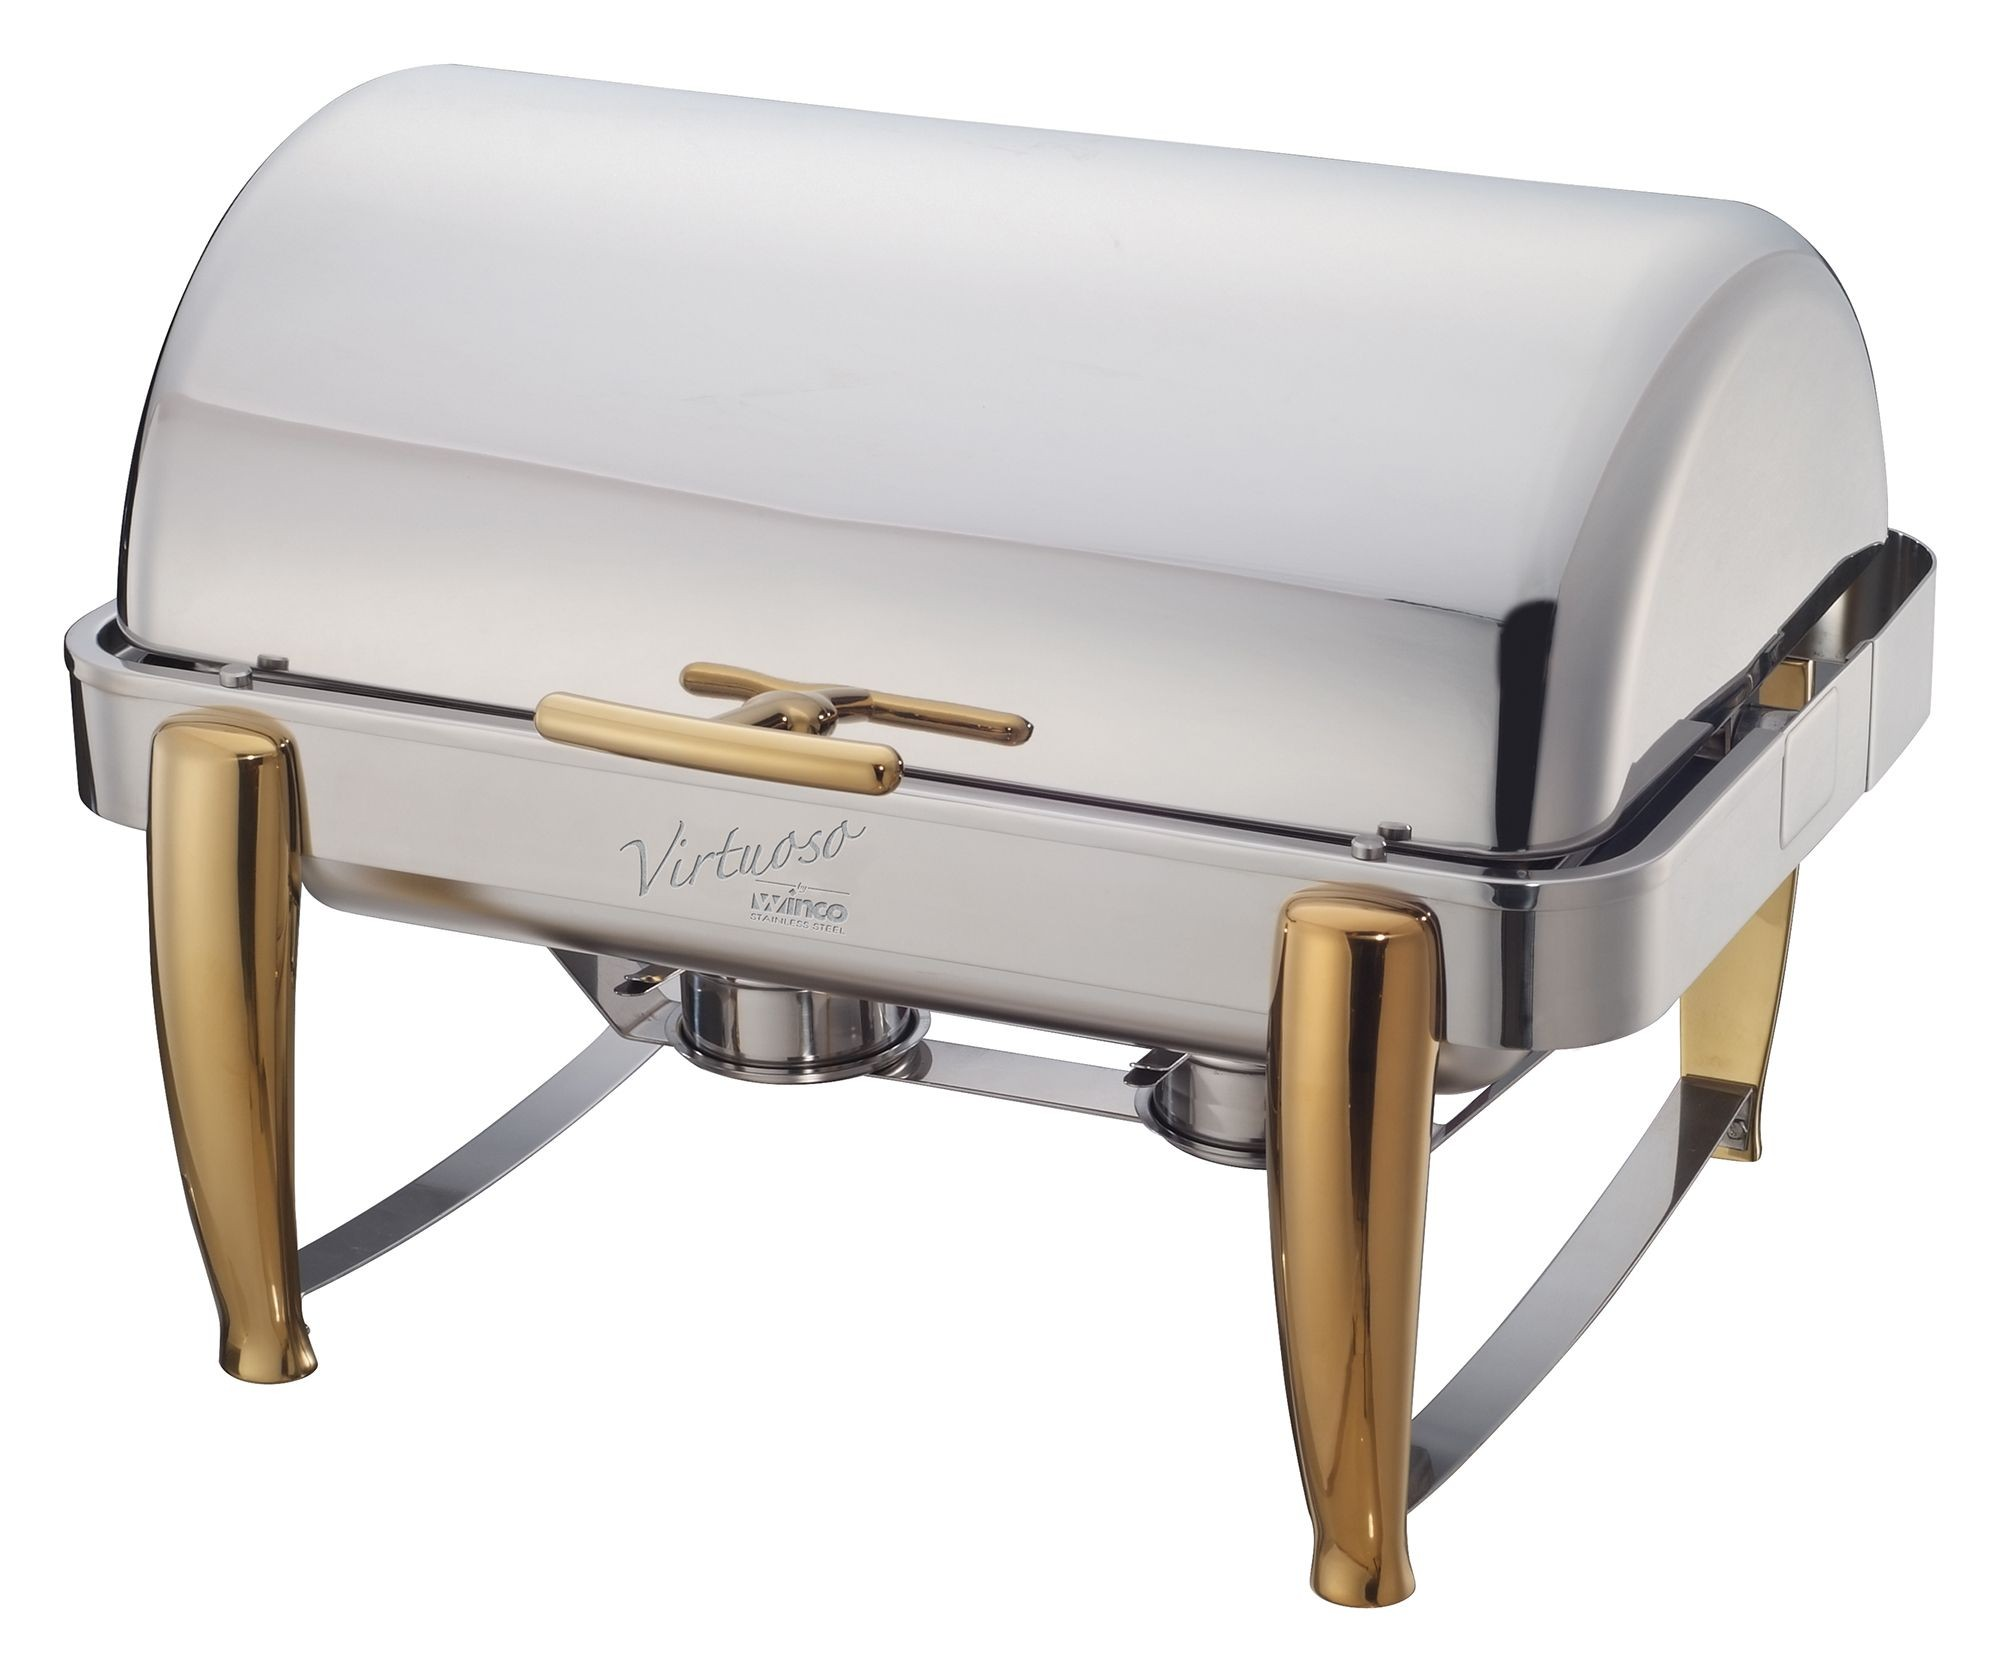 Winco 101A Virtuoso Full Size Roll-Top Chafer with Gold Accent 8 Qt.